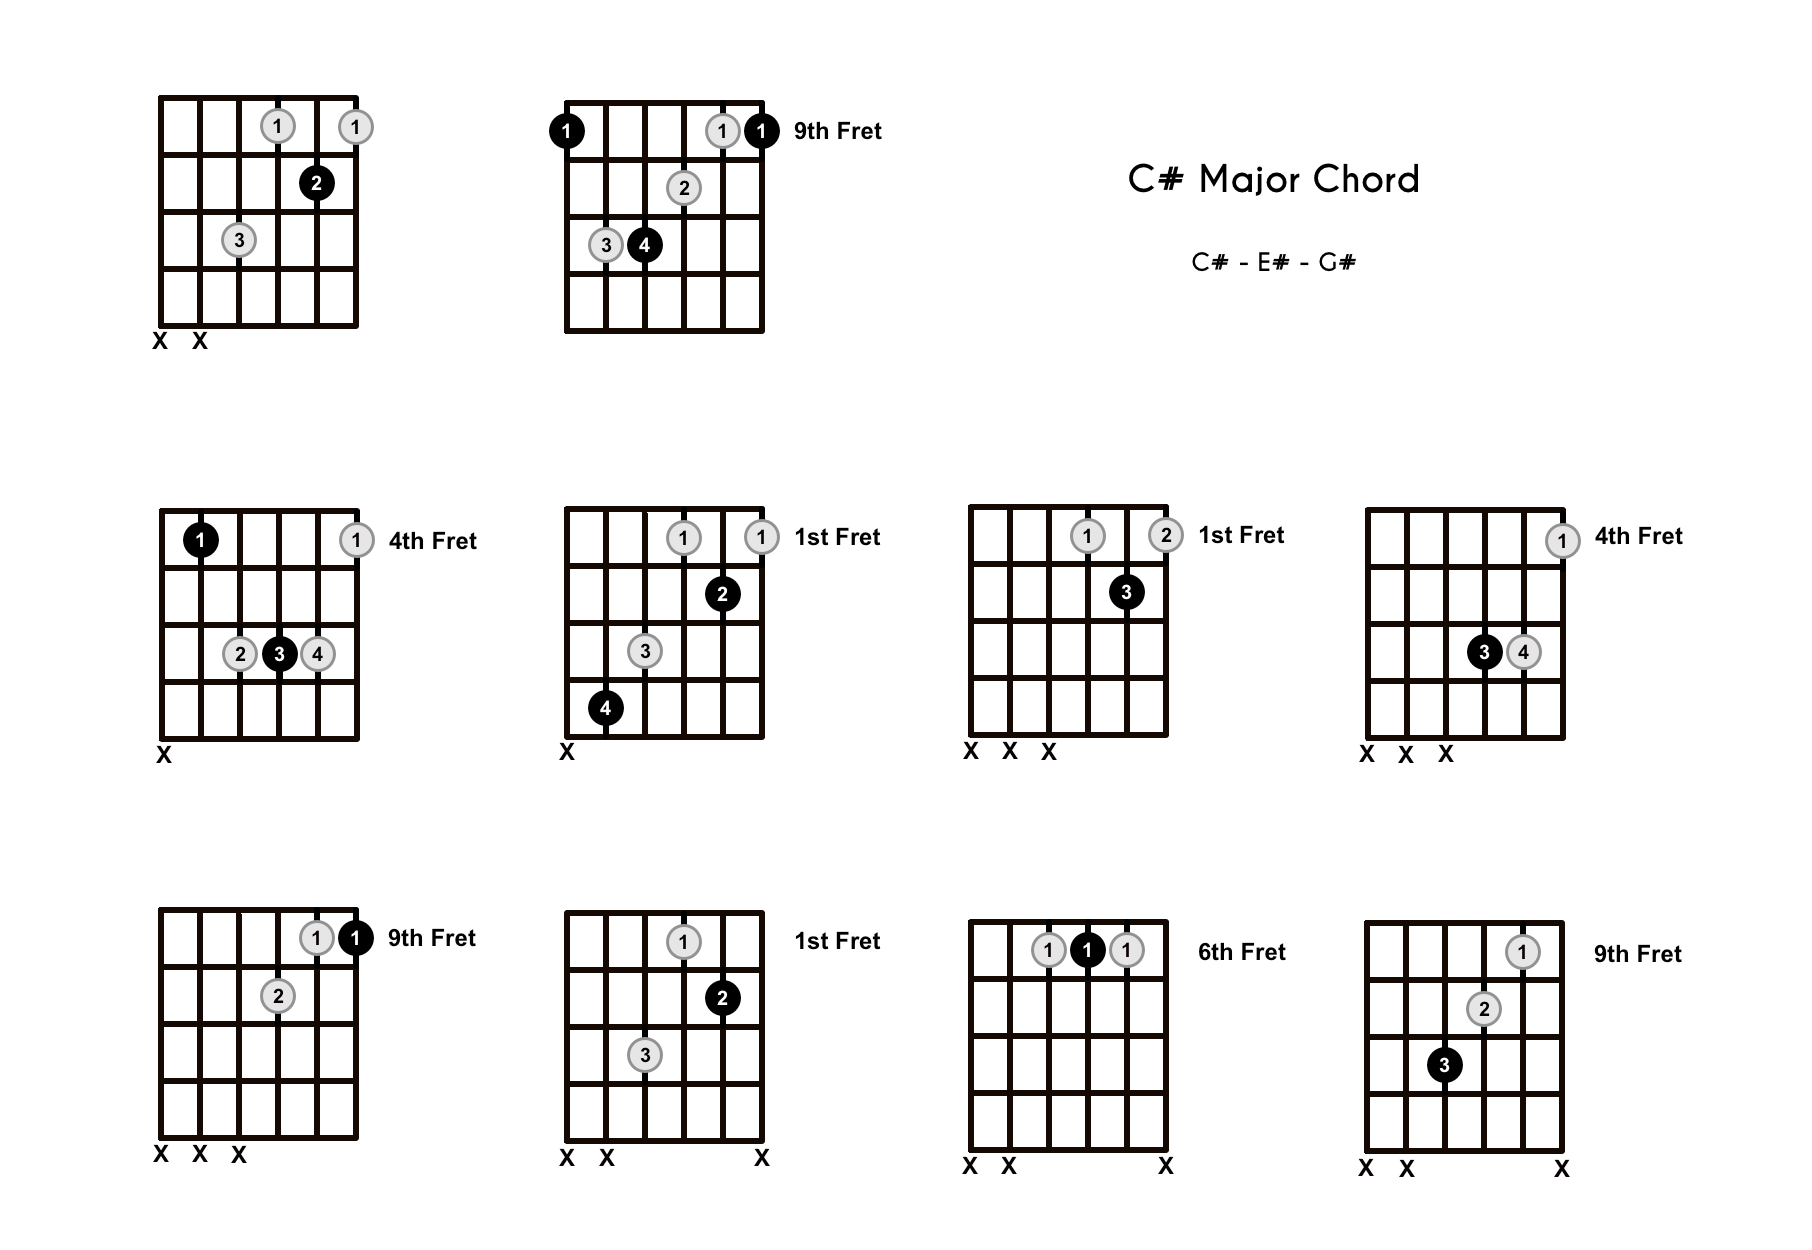 C# Chord on the Guitar (C Sharp Major) – Diagrams, Finger Positions, Theory